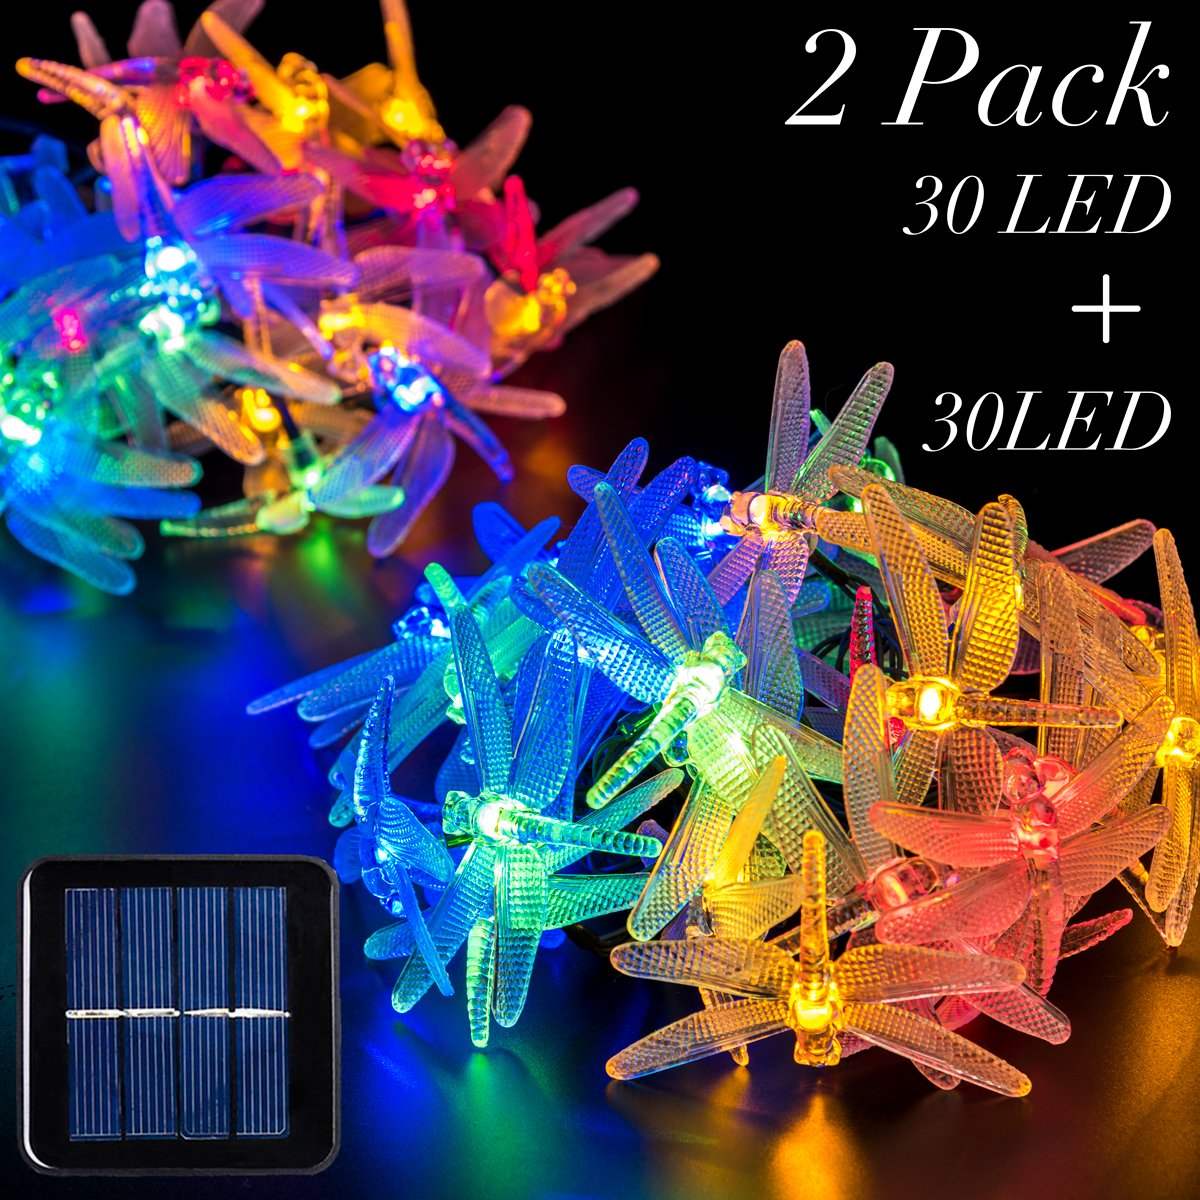 GIGALUMI 2 Pack Solar Strings Lights, 20 Feet 30 LED Dragonfly Solar Fairy Lights, Garden Lights for Outdoor, Home, Lawn, Wedding, Patio, Party and Holiday Decorations- Multi Color